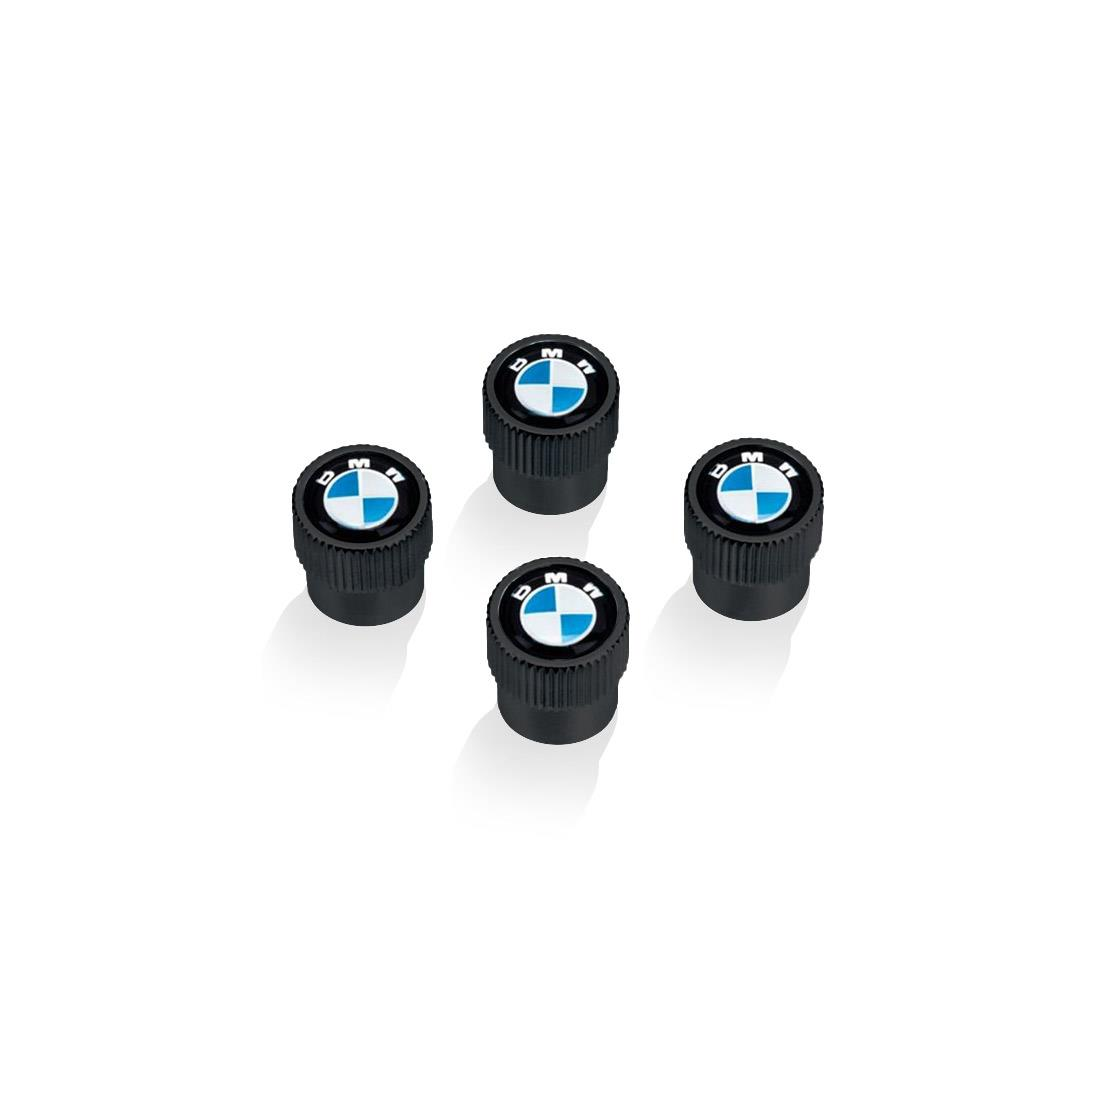 BMW Black Slimline Plate Frame and BMW Logo Black Valve Stem Caps